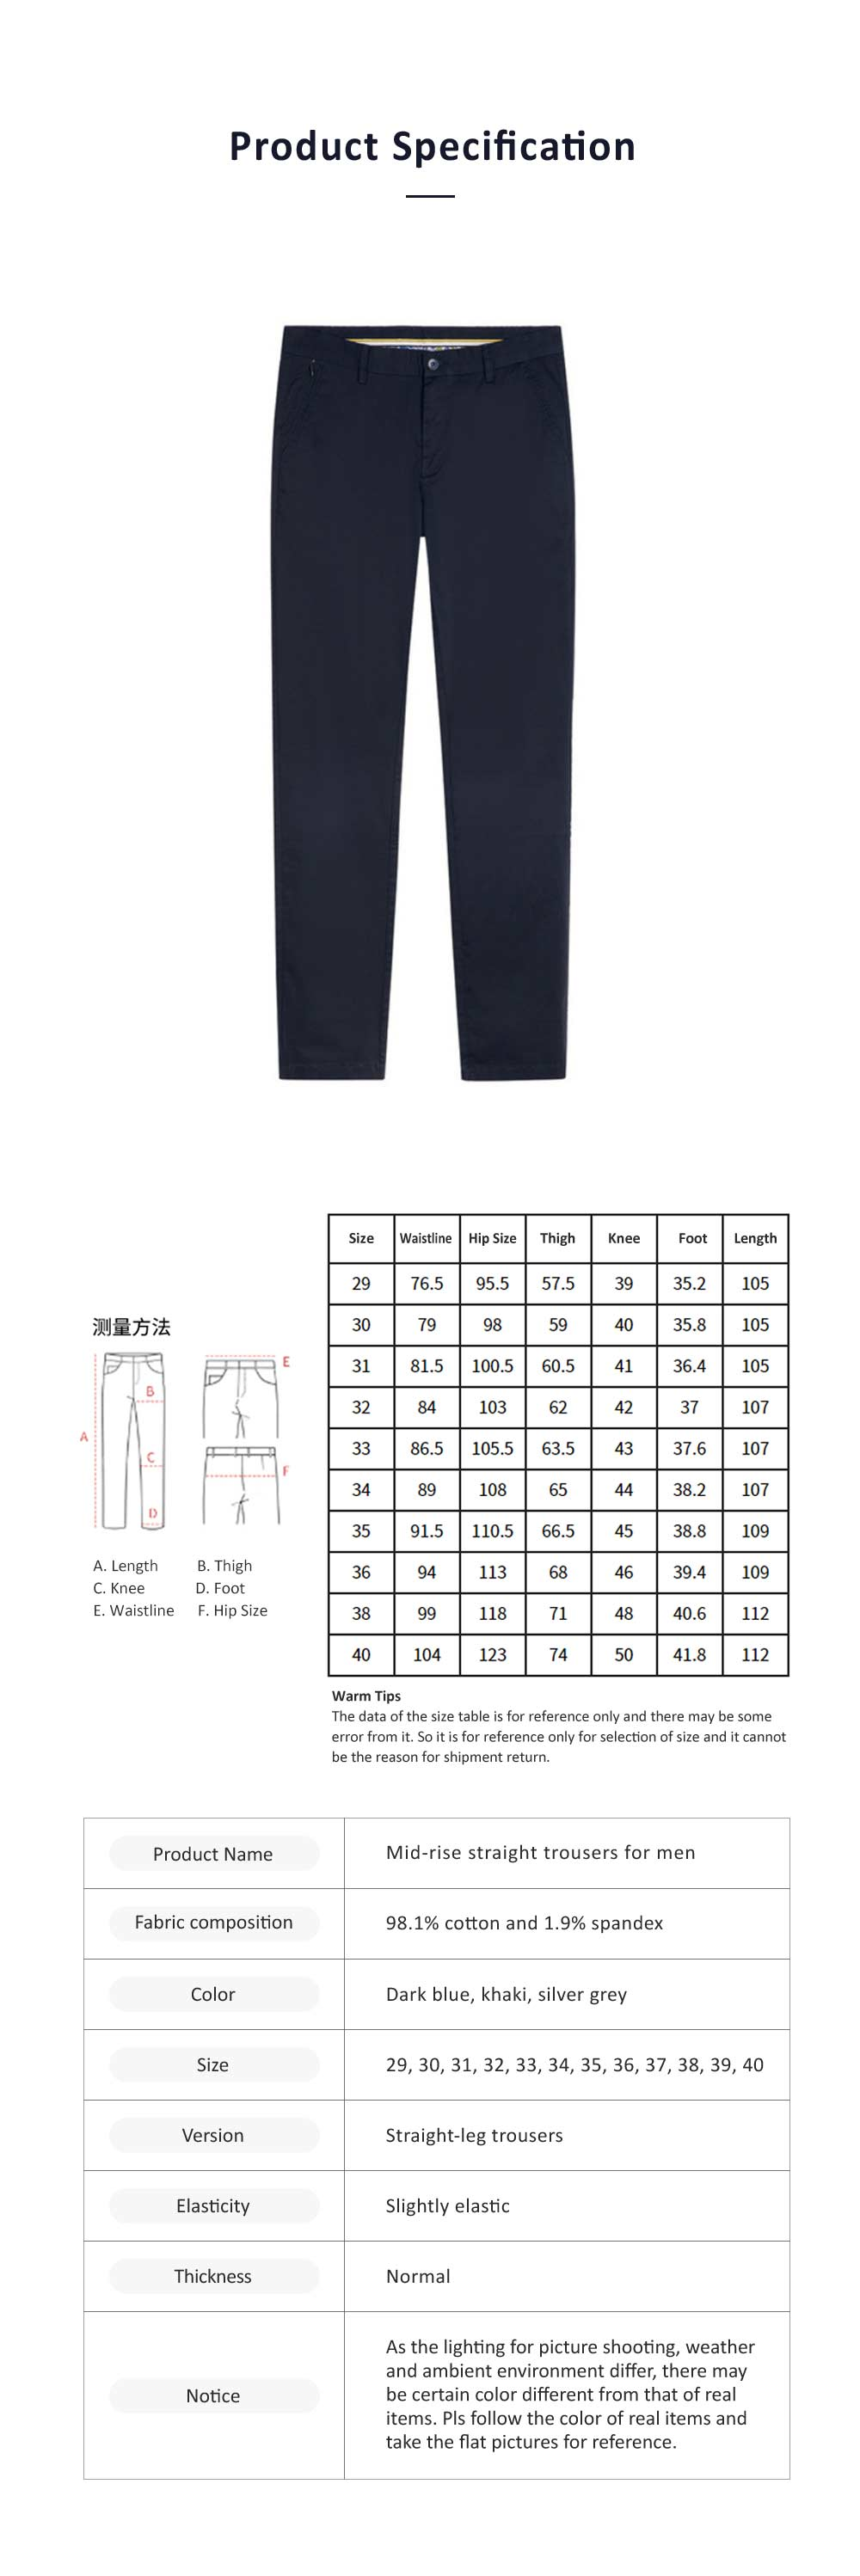 Mid-rise Straight-leg Pants for Men Spring, Pure Color Designed Straight Trousers, Slightly Elastic Fabric Casual Style Men's Wear 7